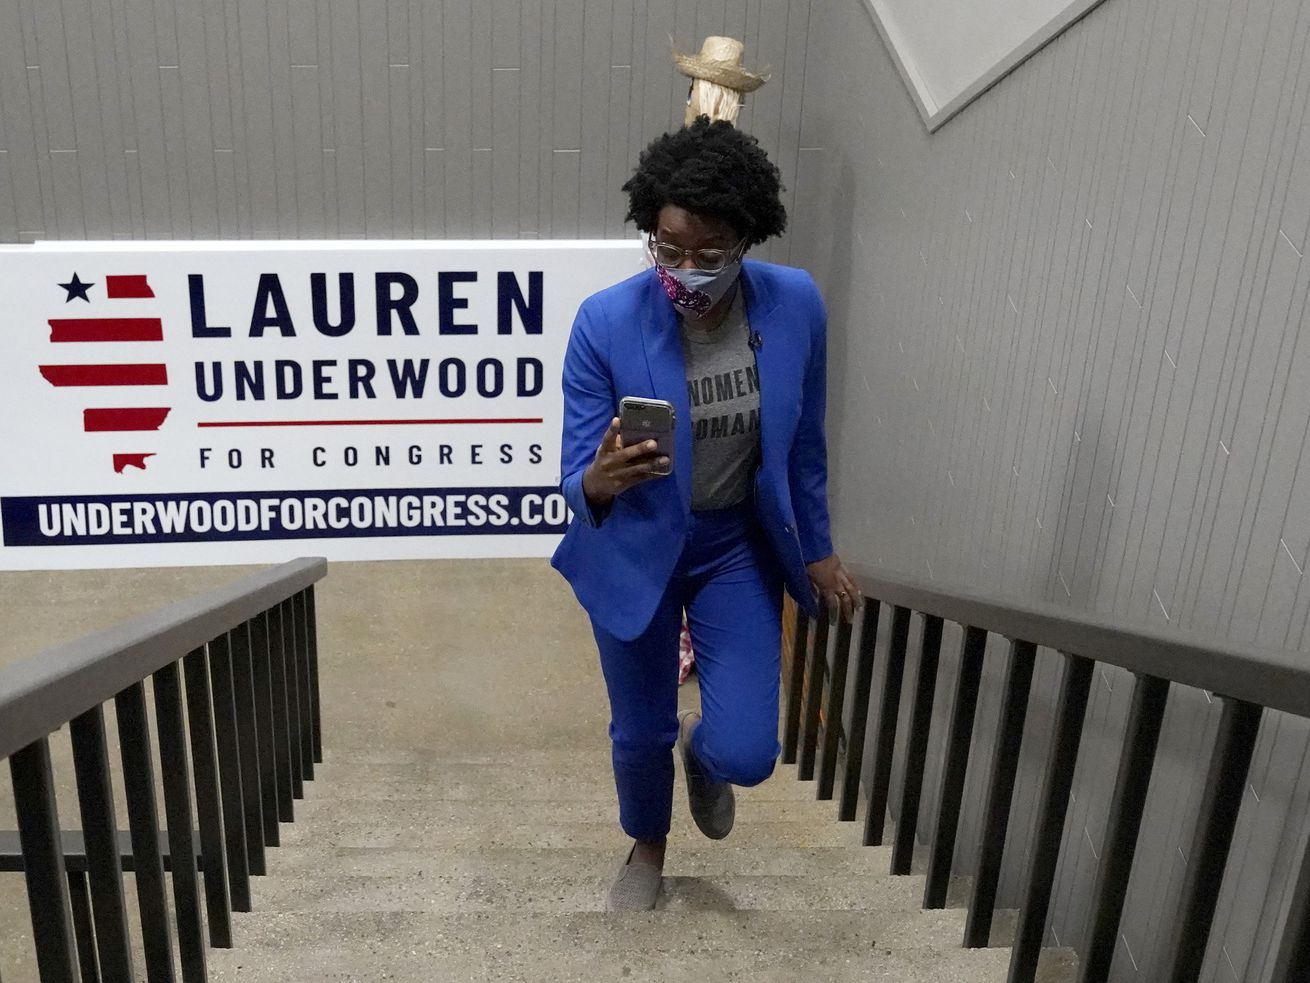 Congresswoman Lauren Underwood checks her phone as she walks up her office at an election night headquarter in St. Charles, Ill., Tuesday, Nov. 3, 2020. Lauren Underwood of Naperville and Jim Oberweis of Sugar Grove are the candidates for the 14th U.S. Congressional District seat. (AP Photo/Nam Y. Huh) ORG XMIT: ILNH104